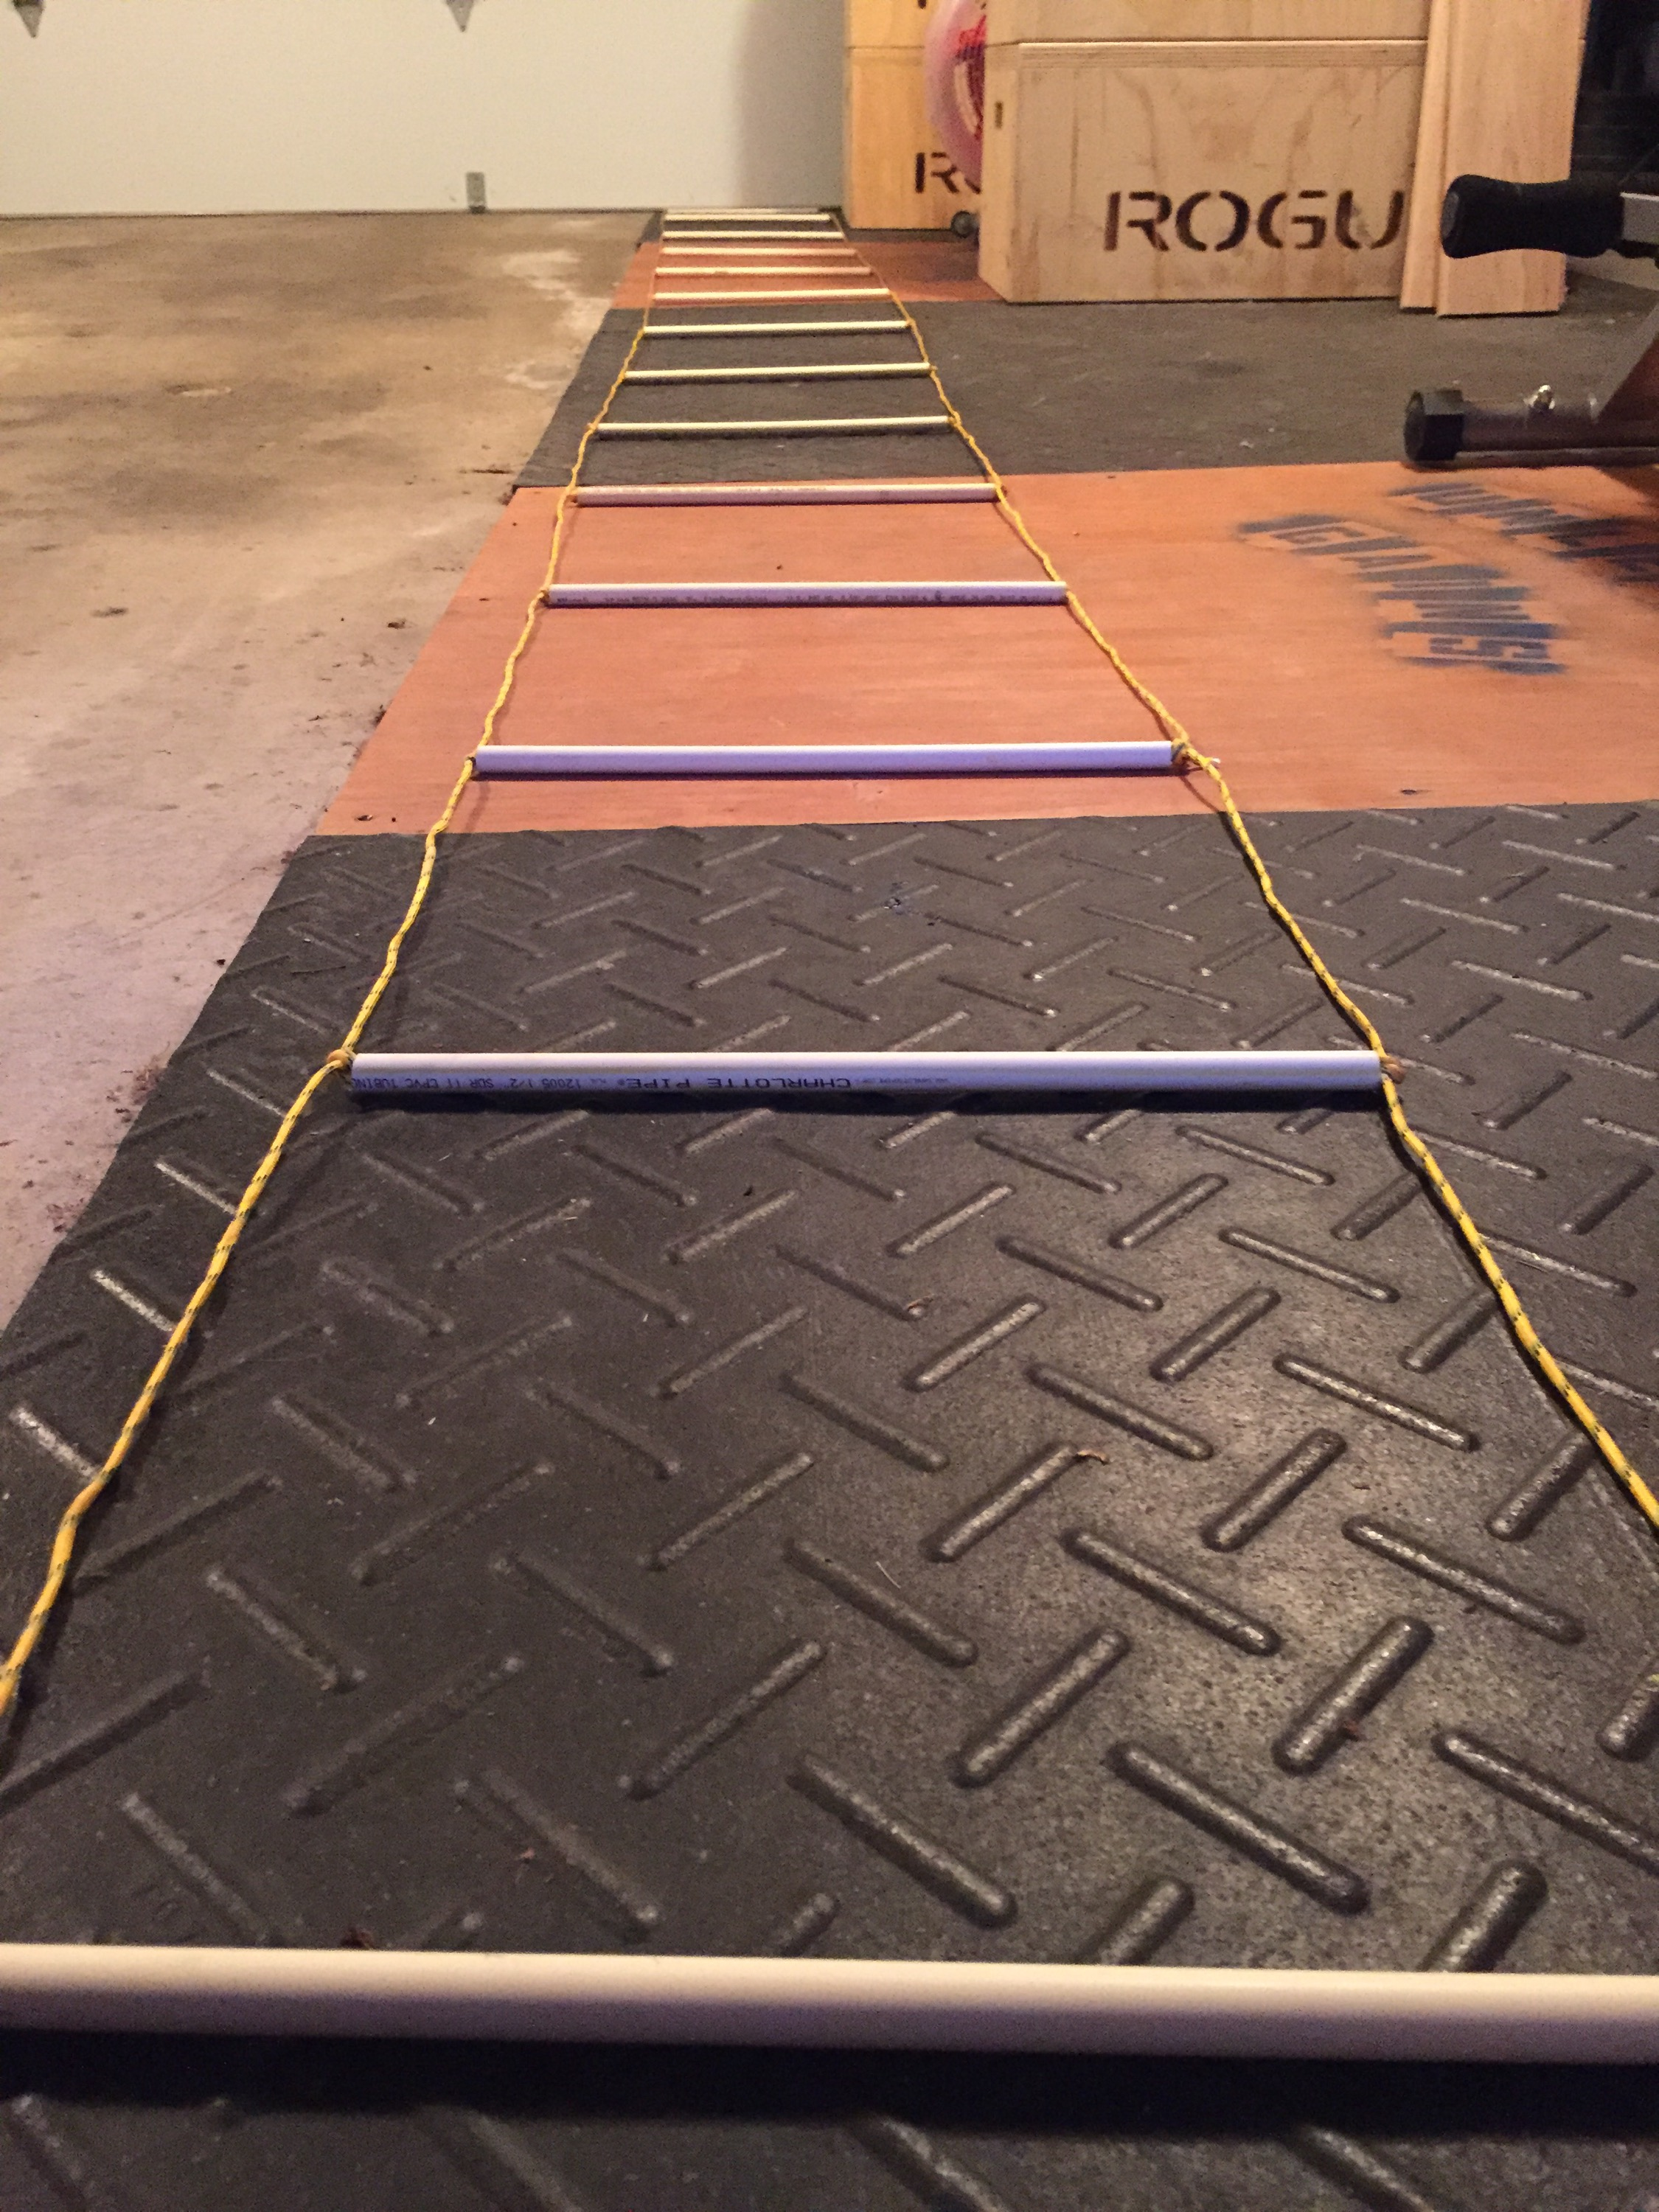 Diy projects nick momrik 39 s crossfit training for Ladder project